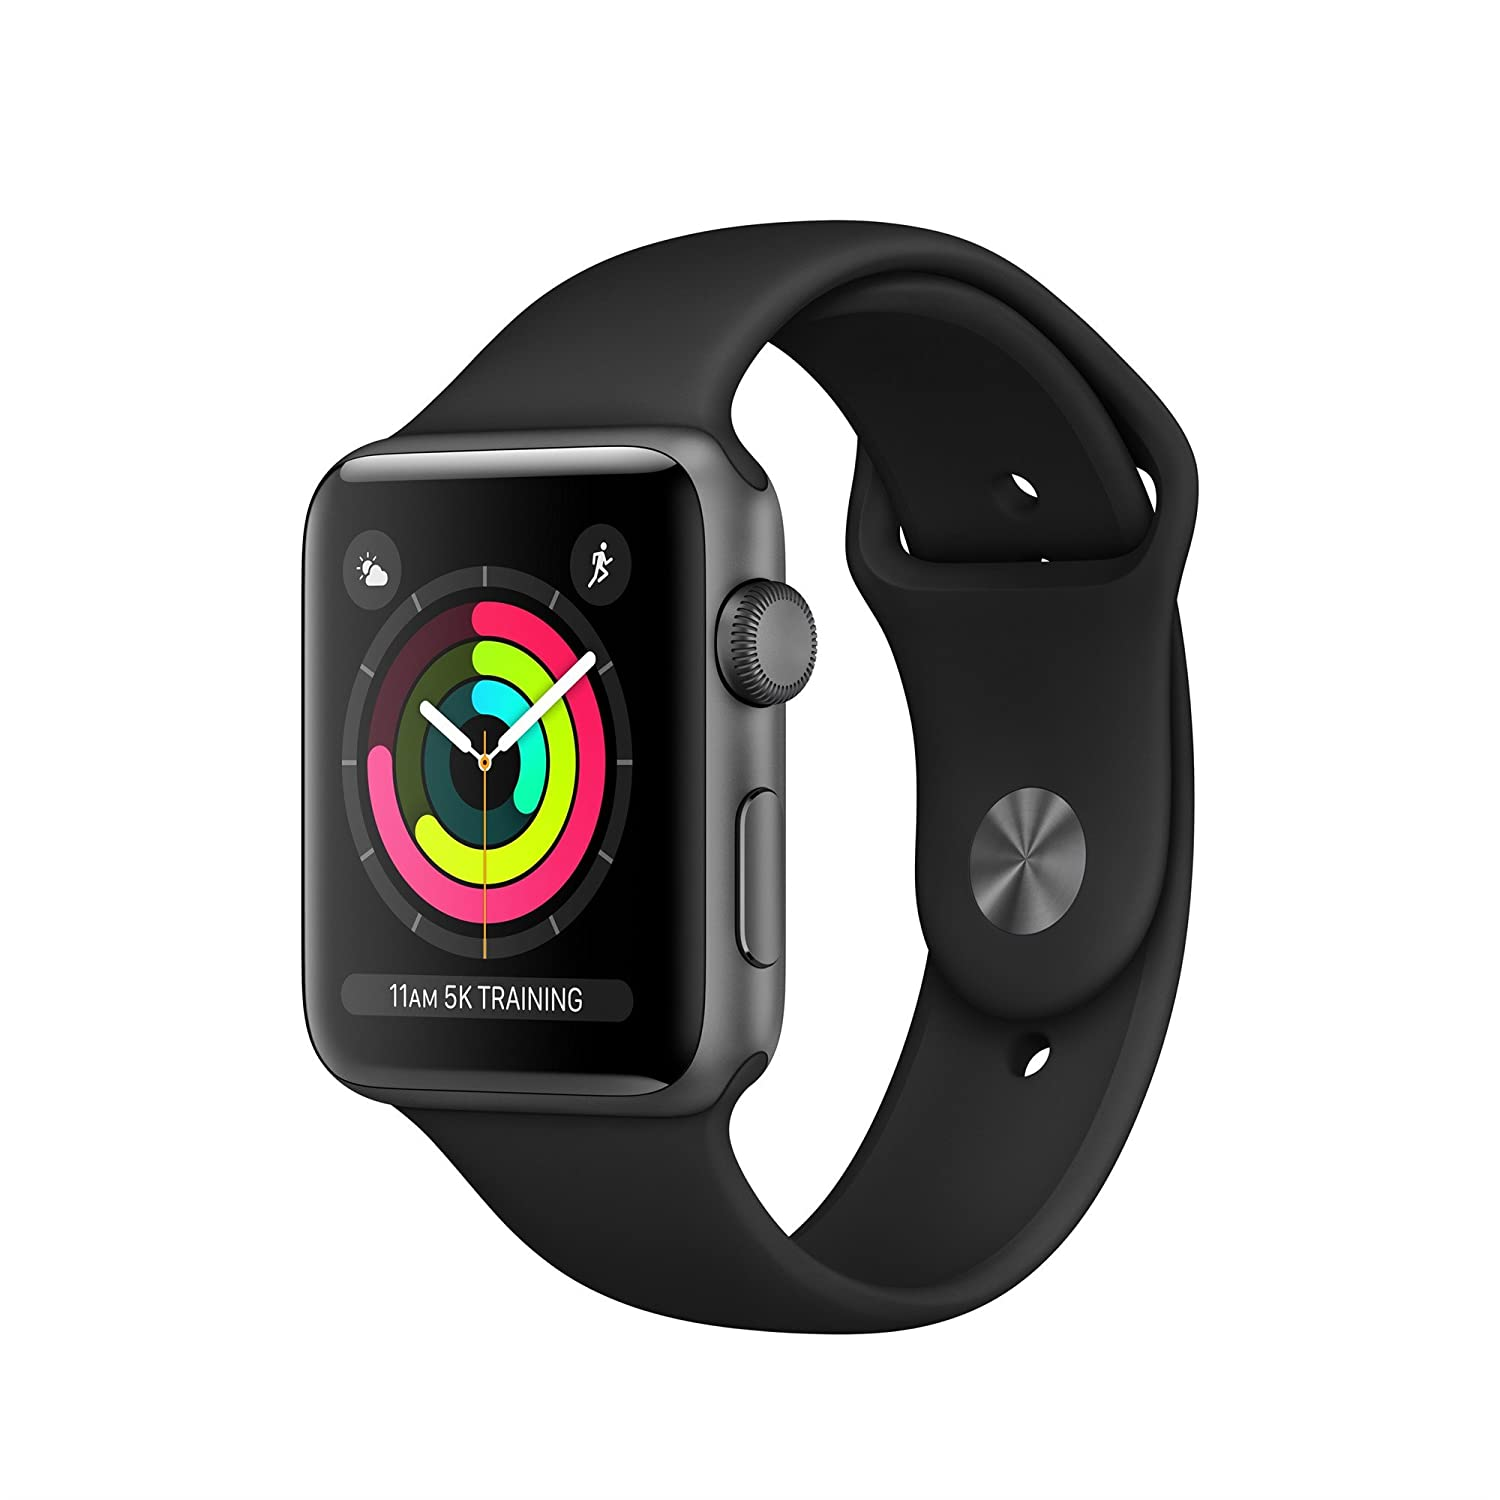 Apple Mql12 B/A Watch Series 3 Gps 42mm Space Grey Aluminium Case With Black Sport Band   (Smart Tech > Smart Fitness) by Amazon